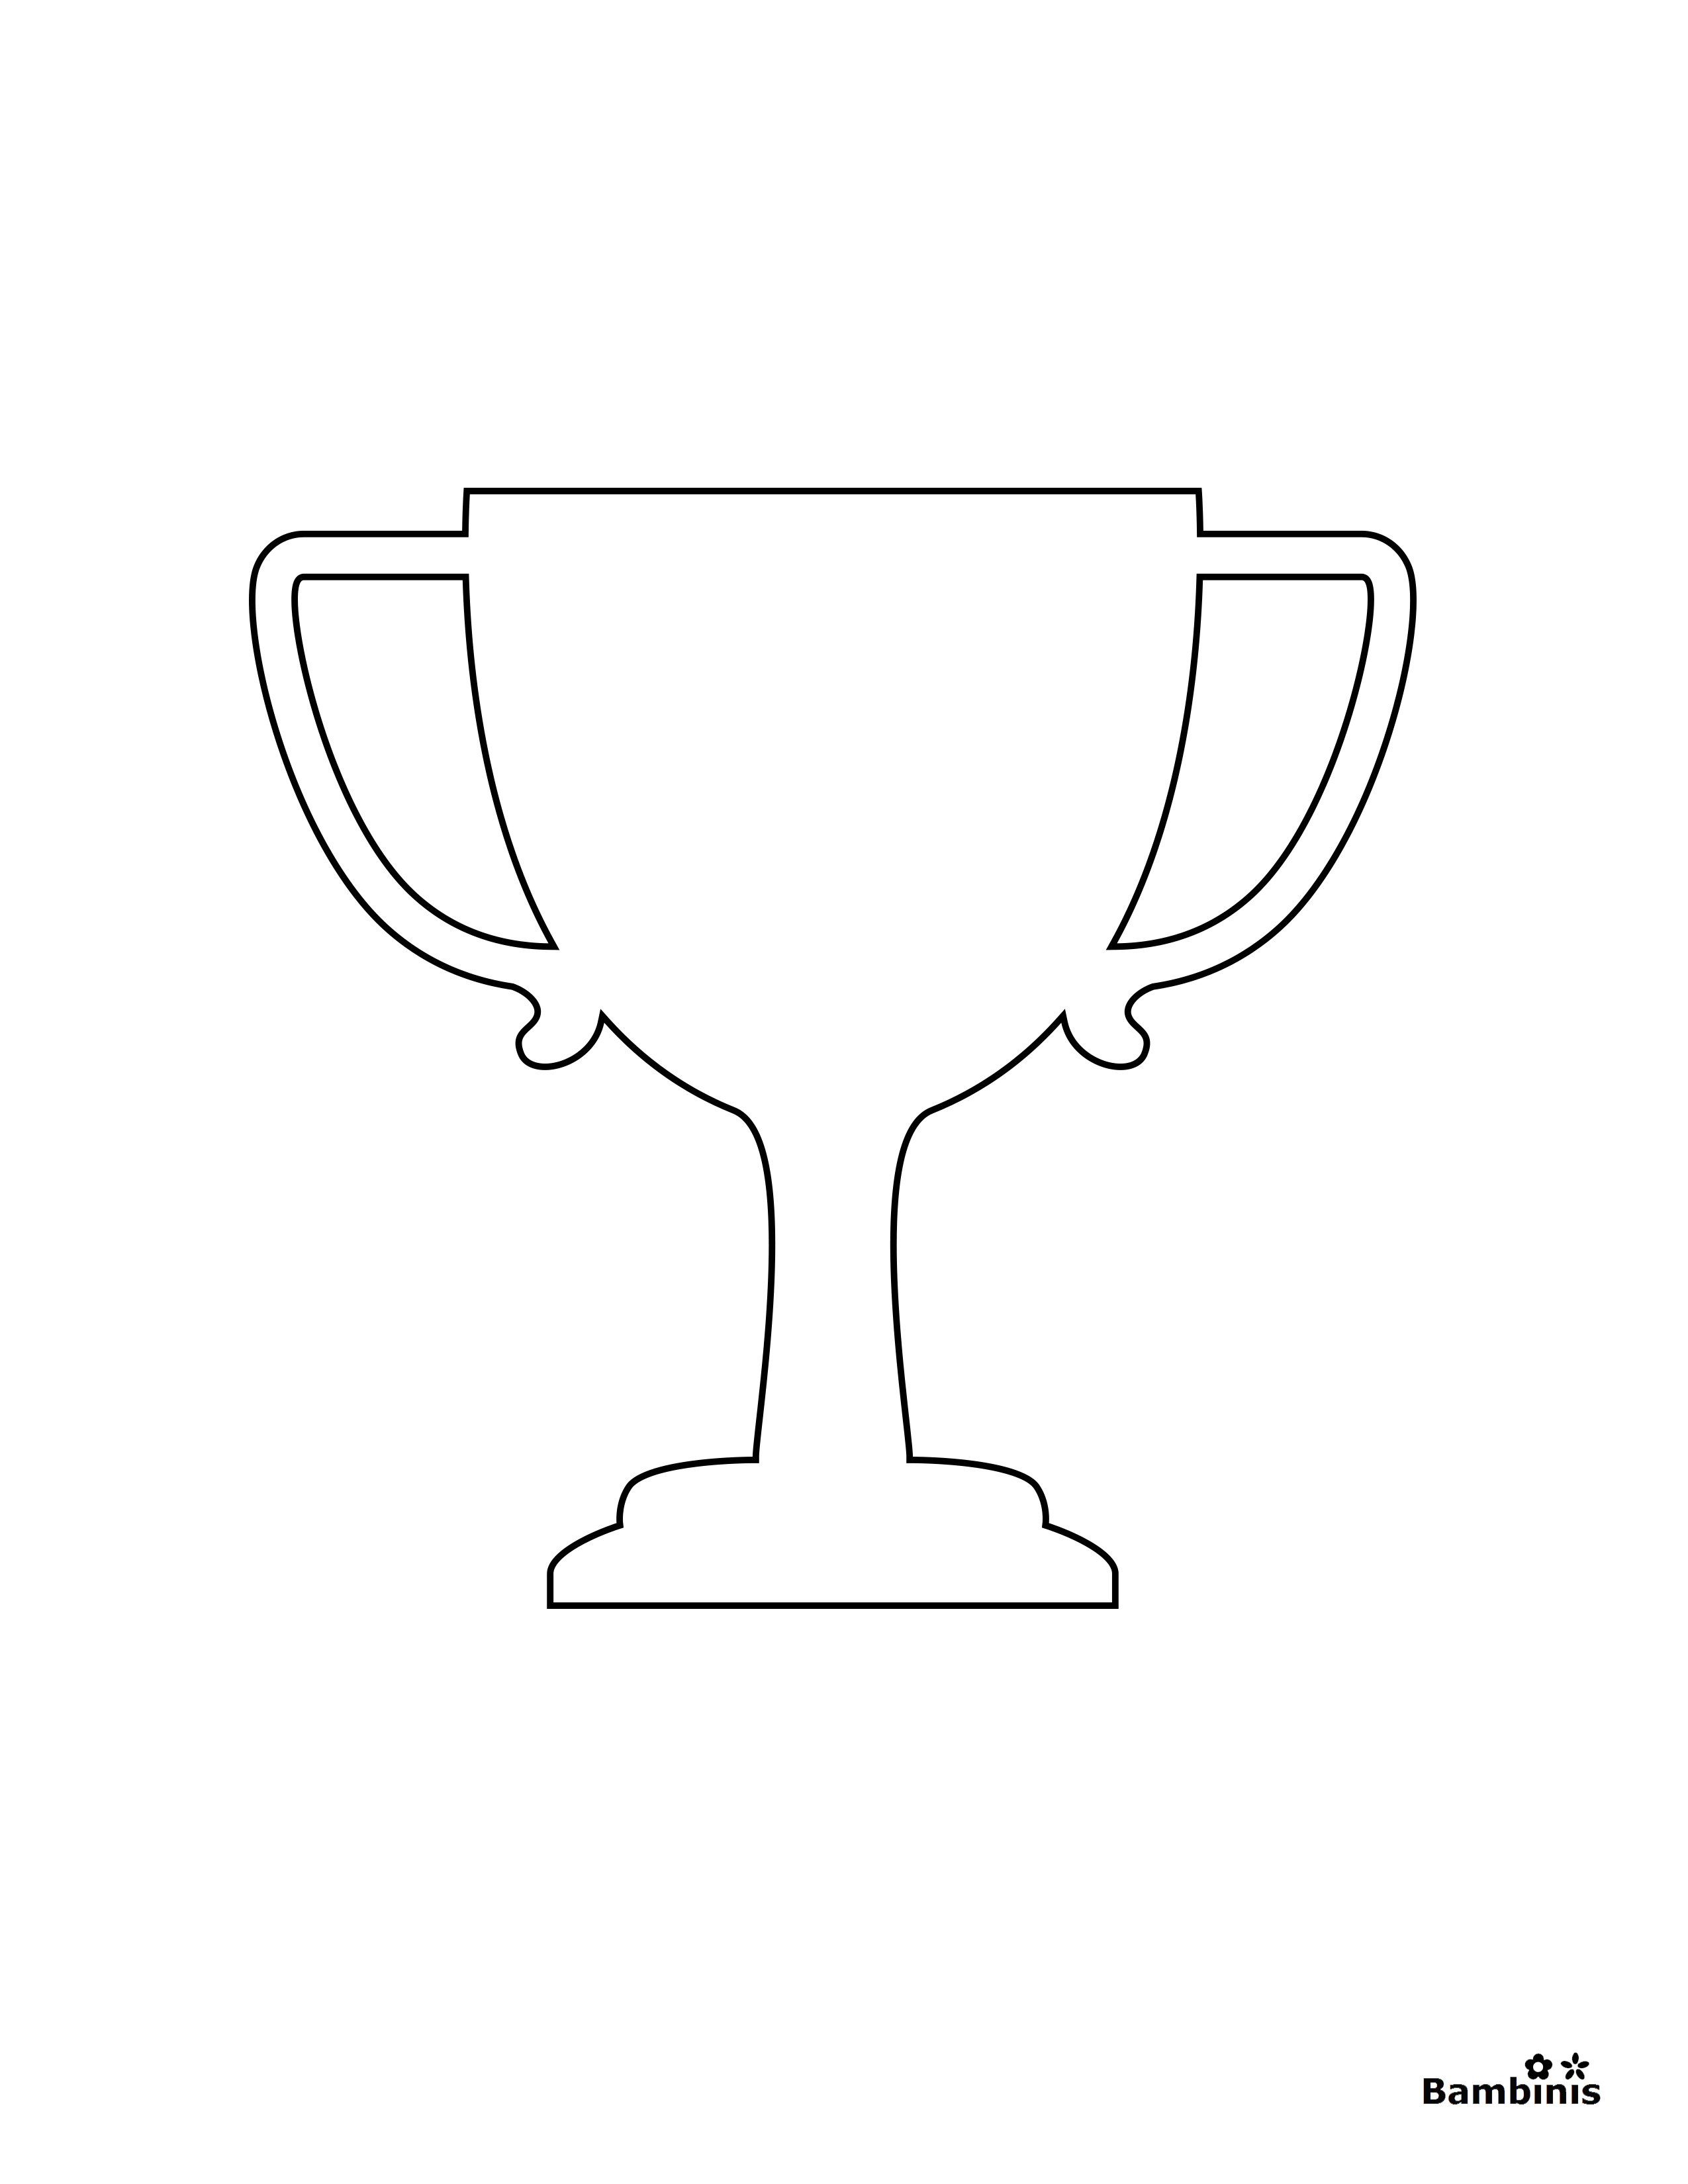 printable trophy trophy coloring page bambinis trophy printable